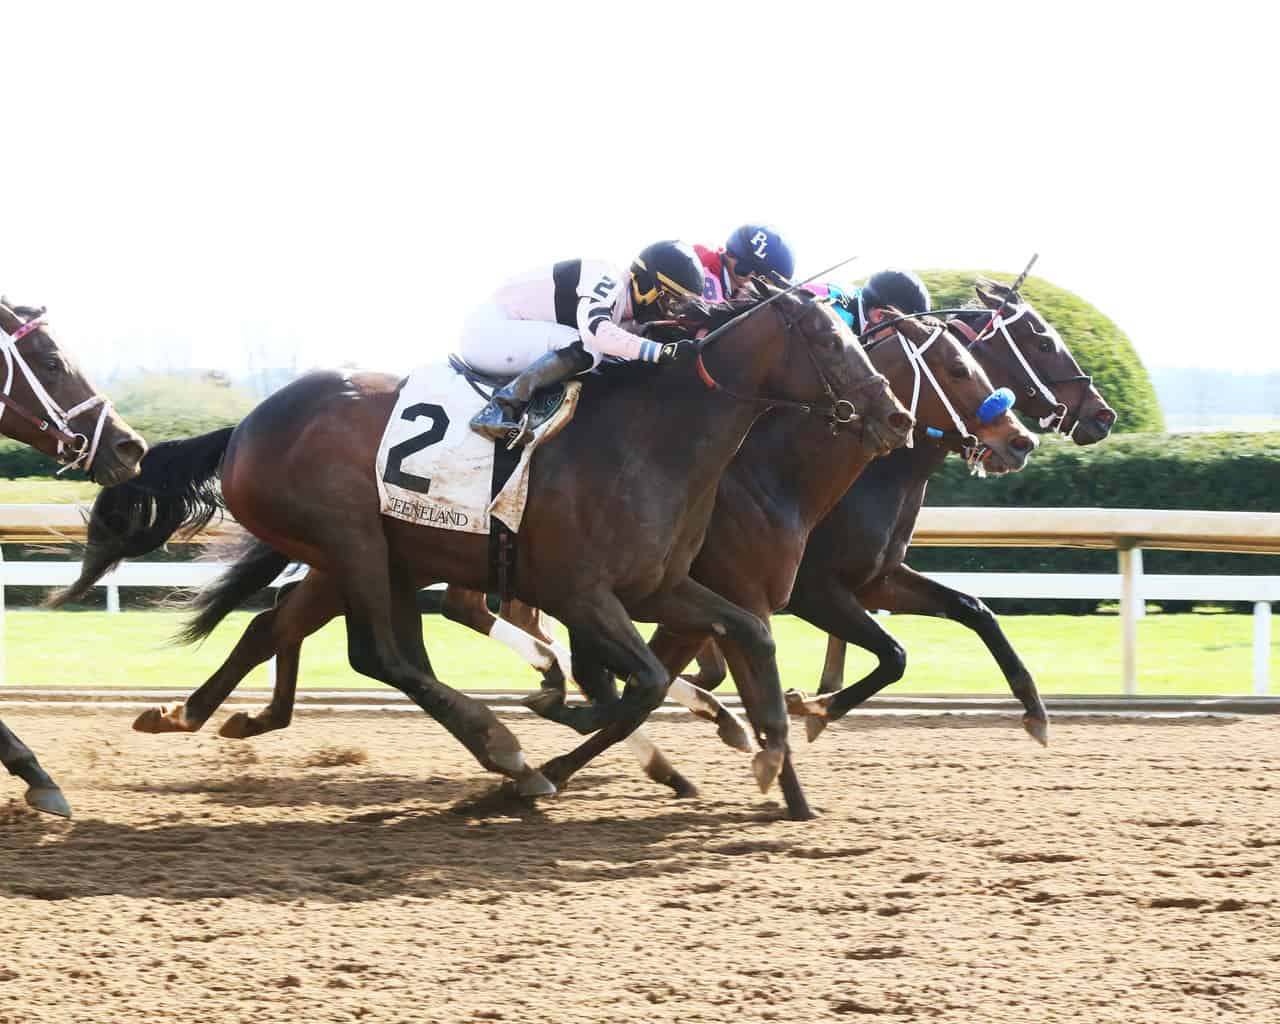 Favorites shine in final preps at Keeneland